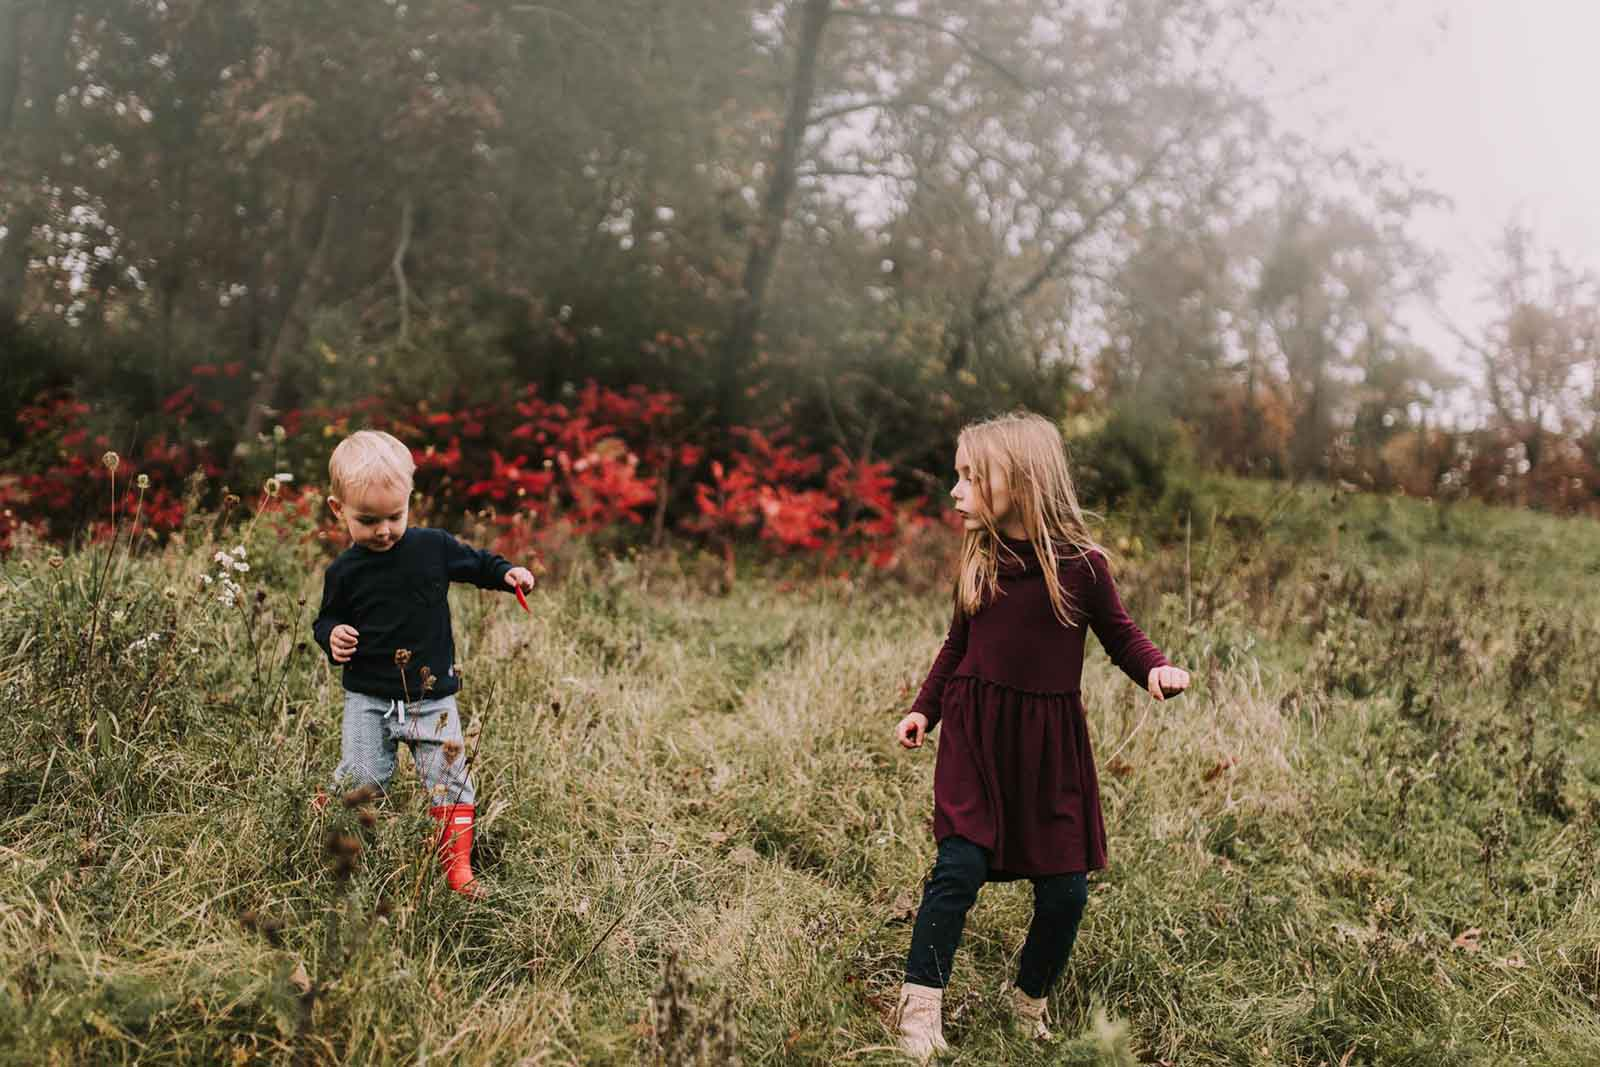 A girl and a boy play. Finding balance with photography and motherhood